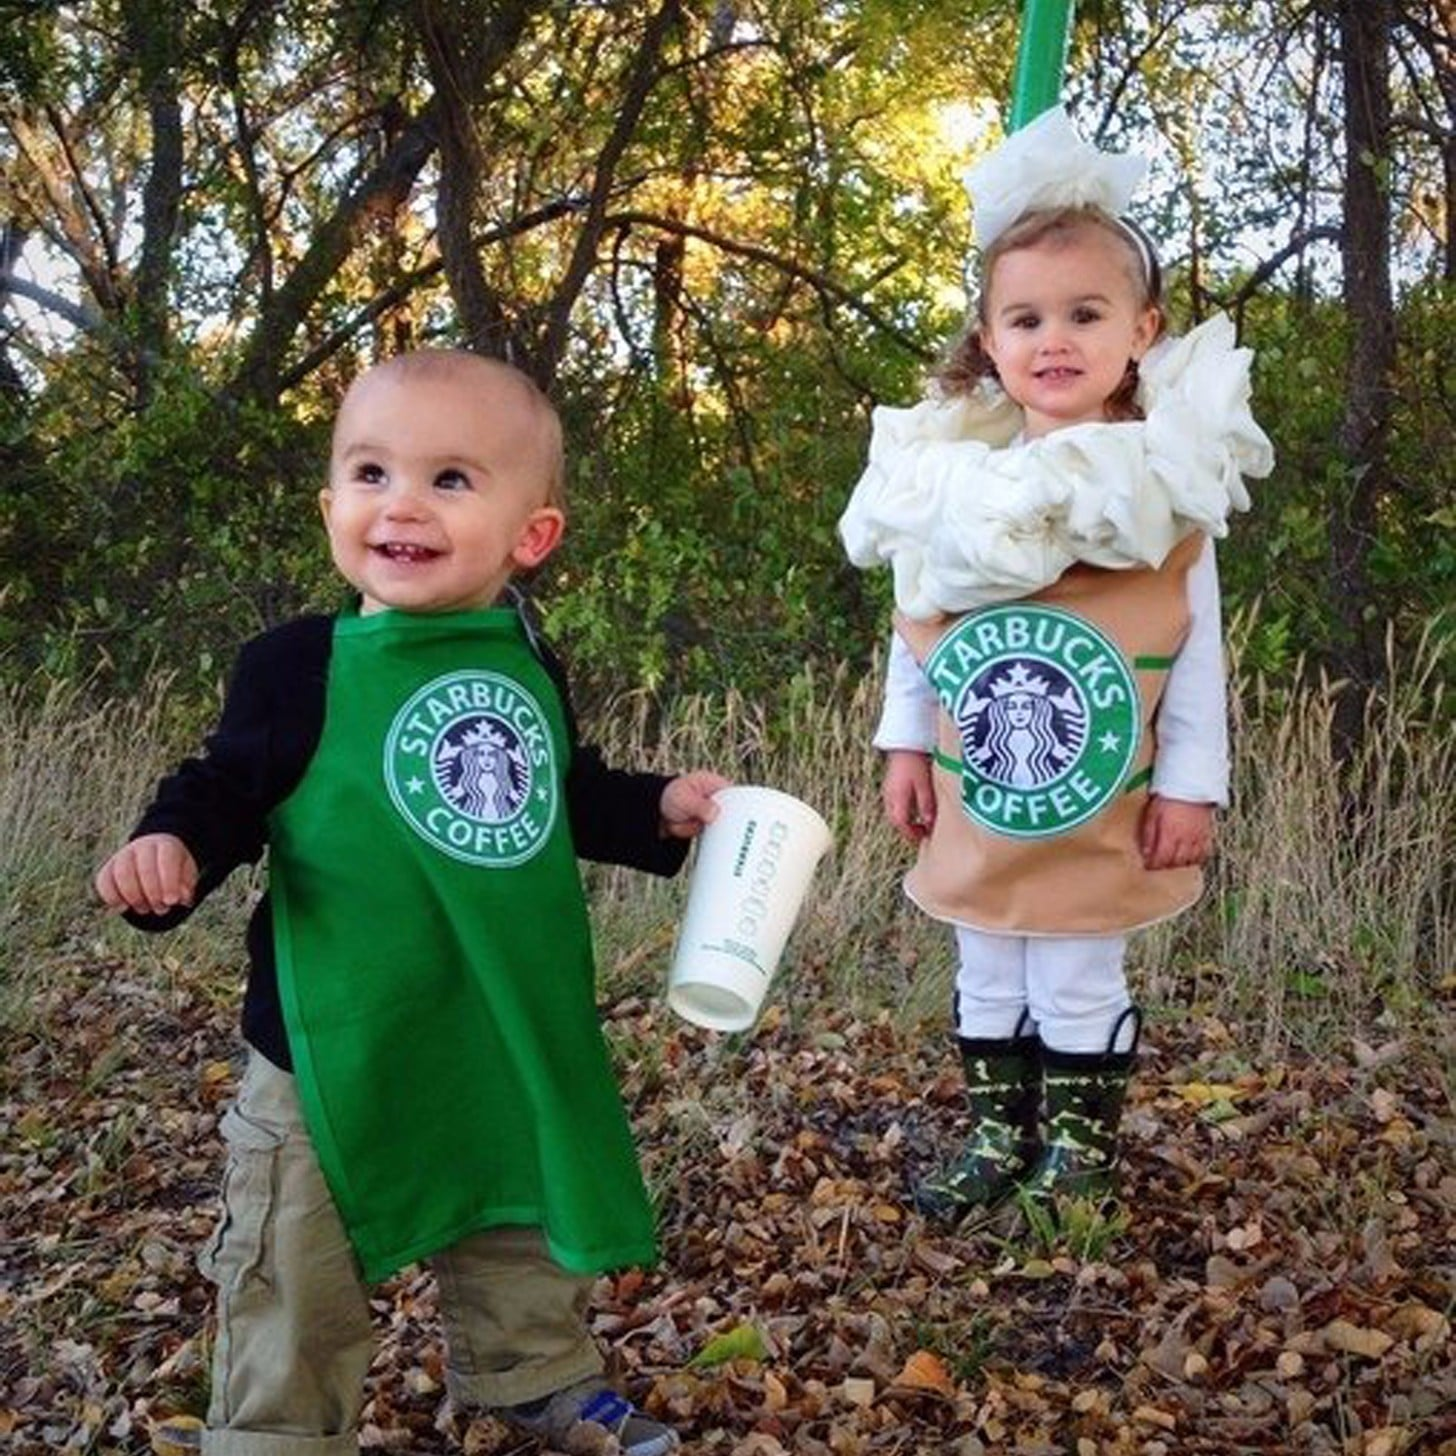 matching sibling costumes for kids halloween popsugar moms - Kids At Halloween